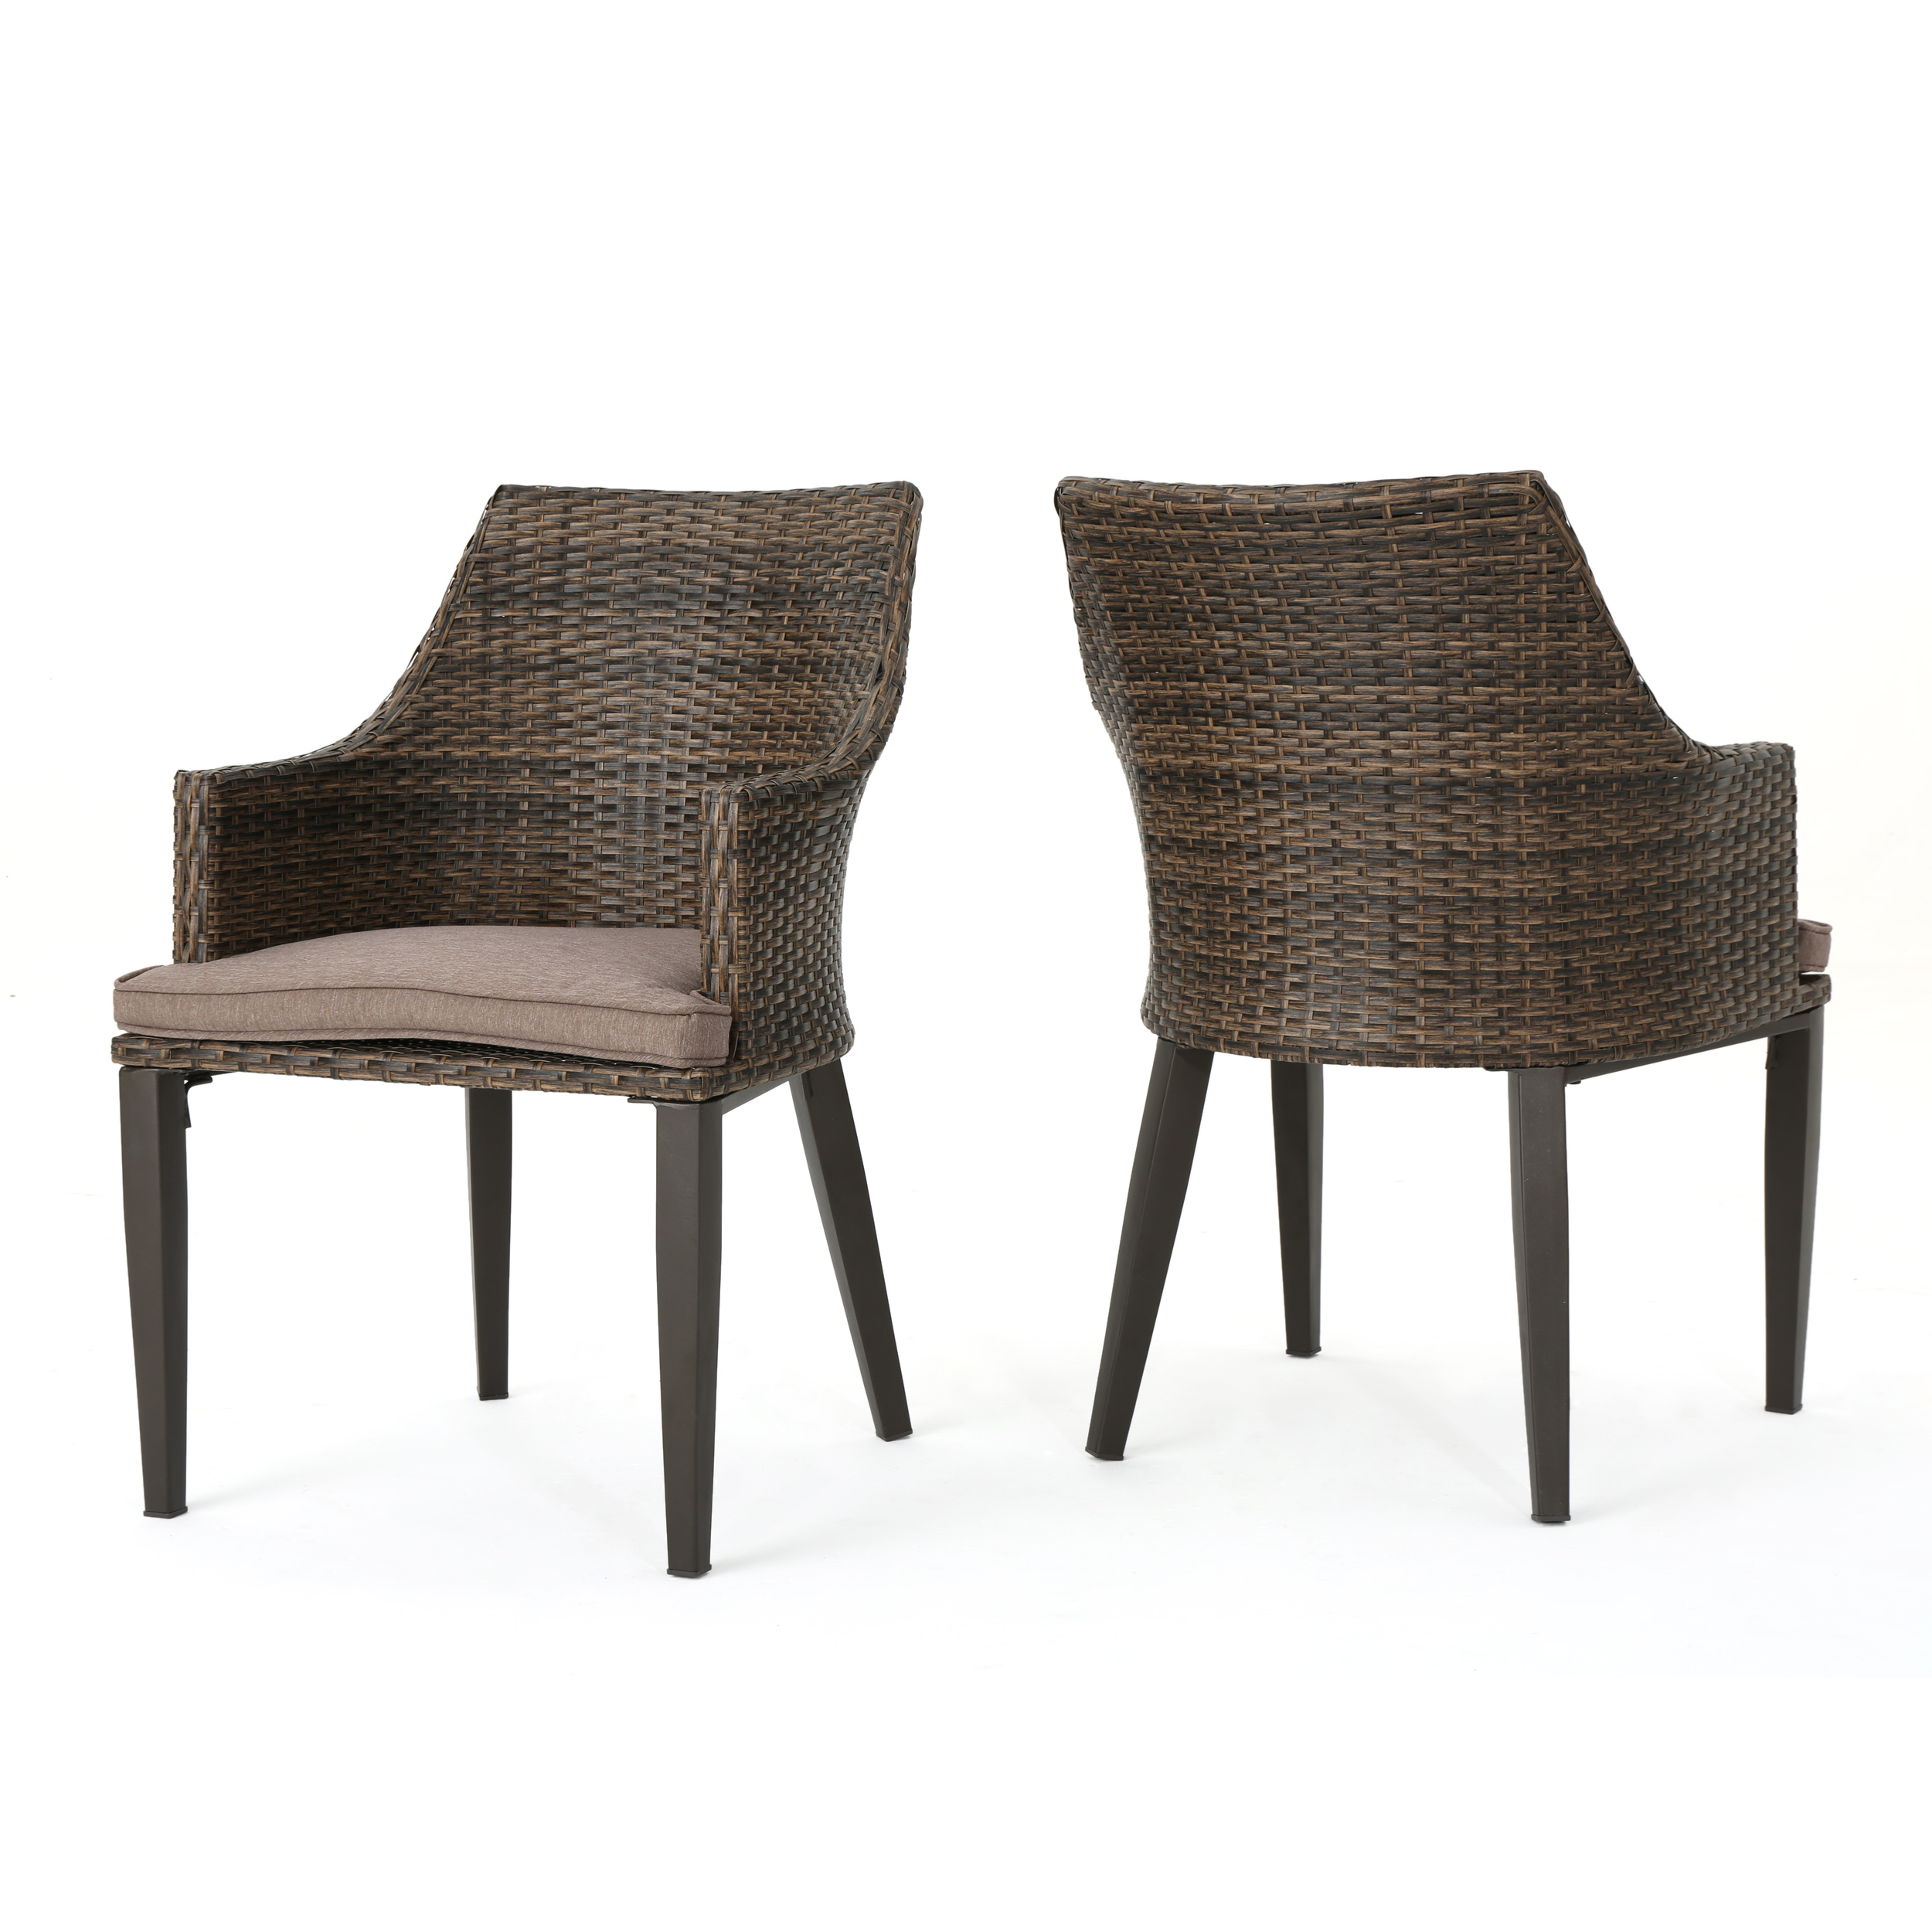 Hillhut Outdoor Wicker Dining Chairs with Water Resistant Cushions, Set of 2, Mocha